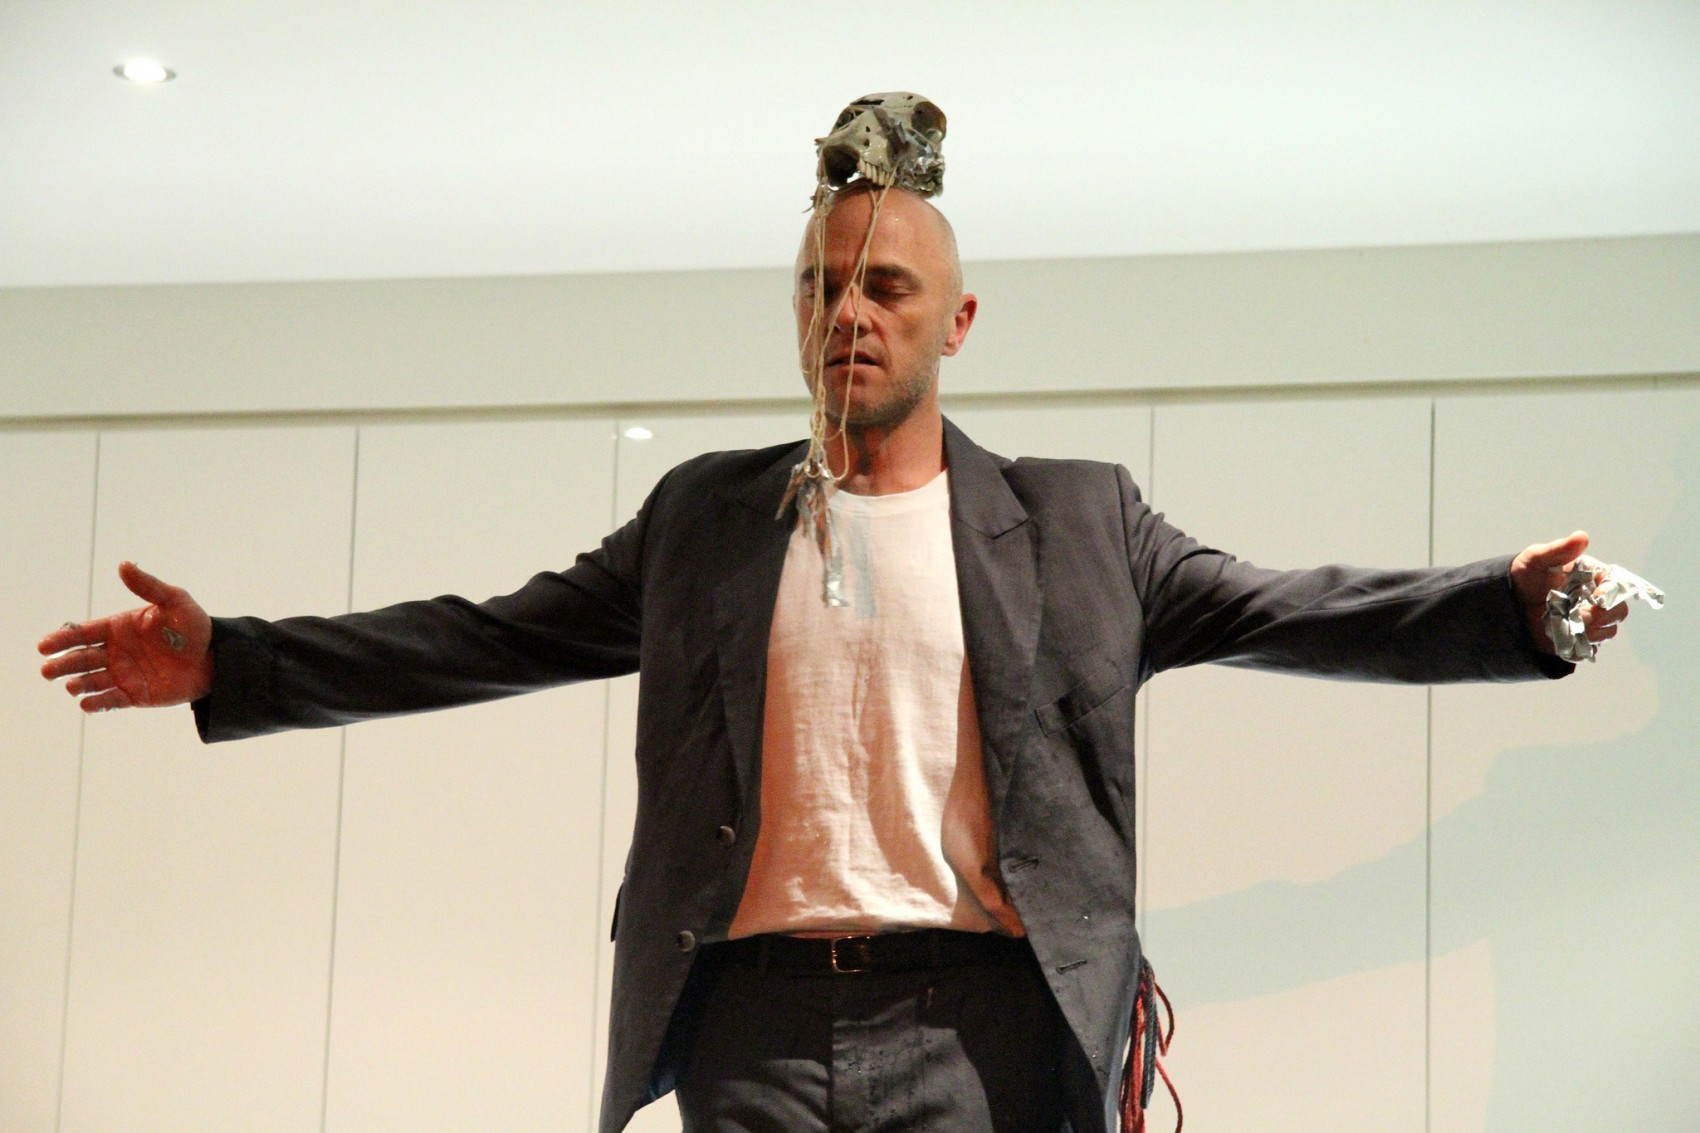 Man with outstretched arms and eyes closed, balancing a skull on his head